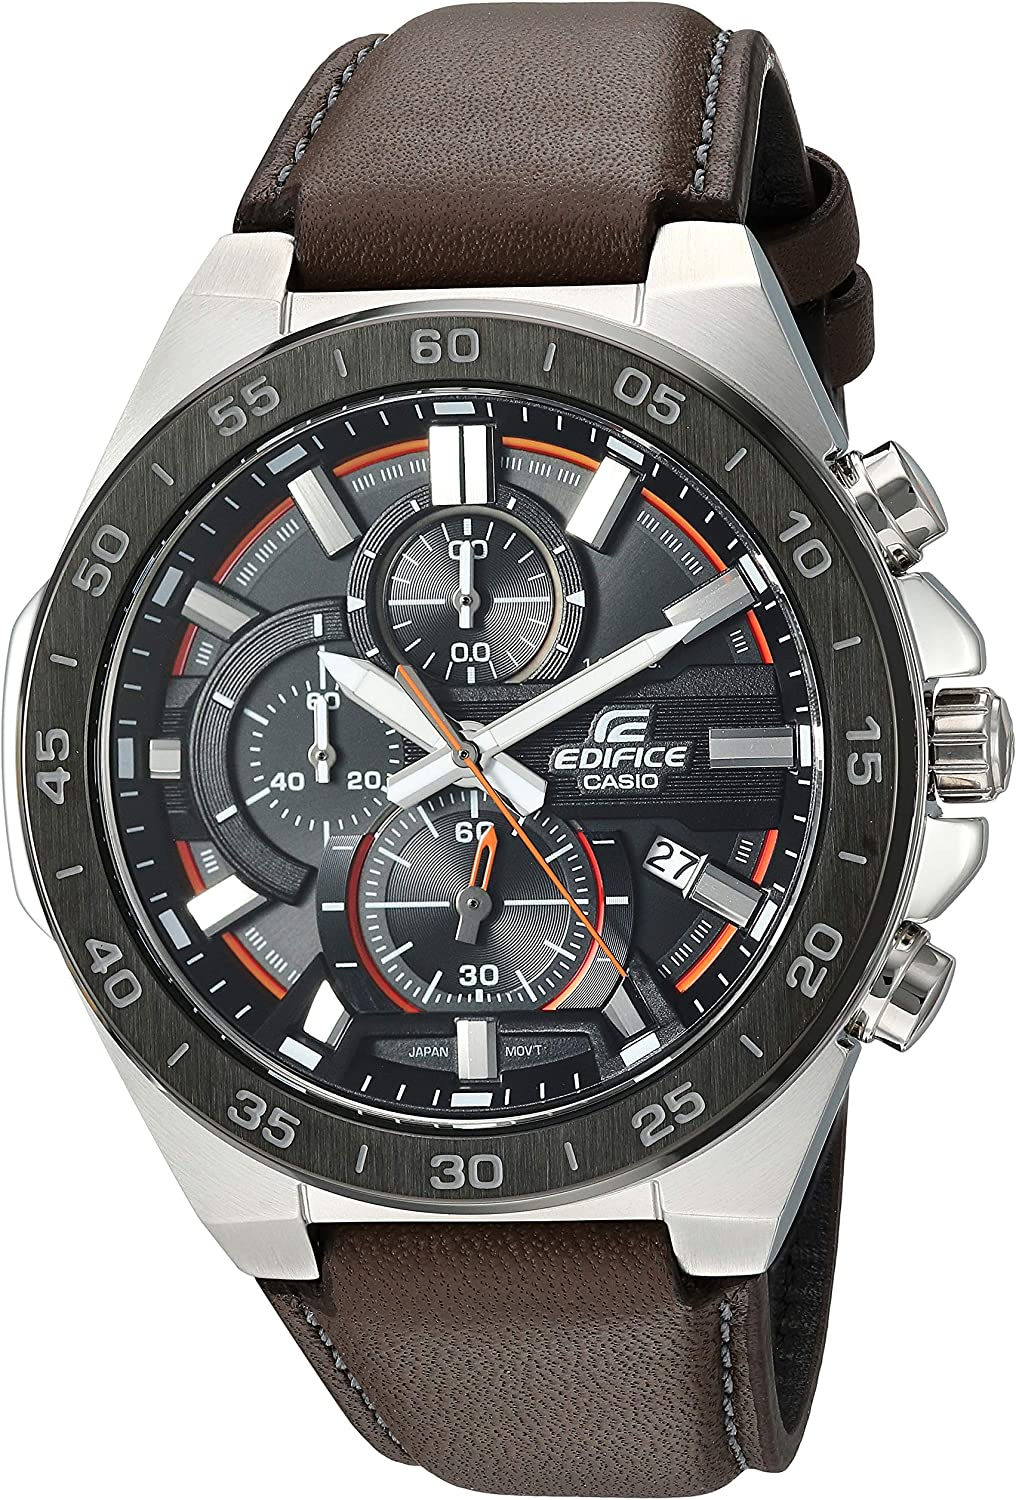 Casio Men s Edifice Stainless Steel Quartz Watch with Leather Strap, Brown, 21.3 Model EFR-564BL-5AVCR